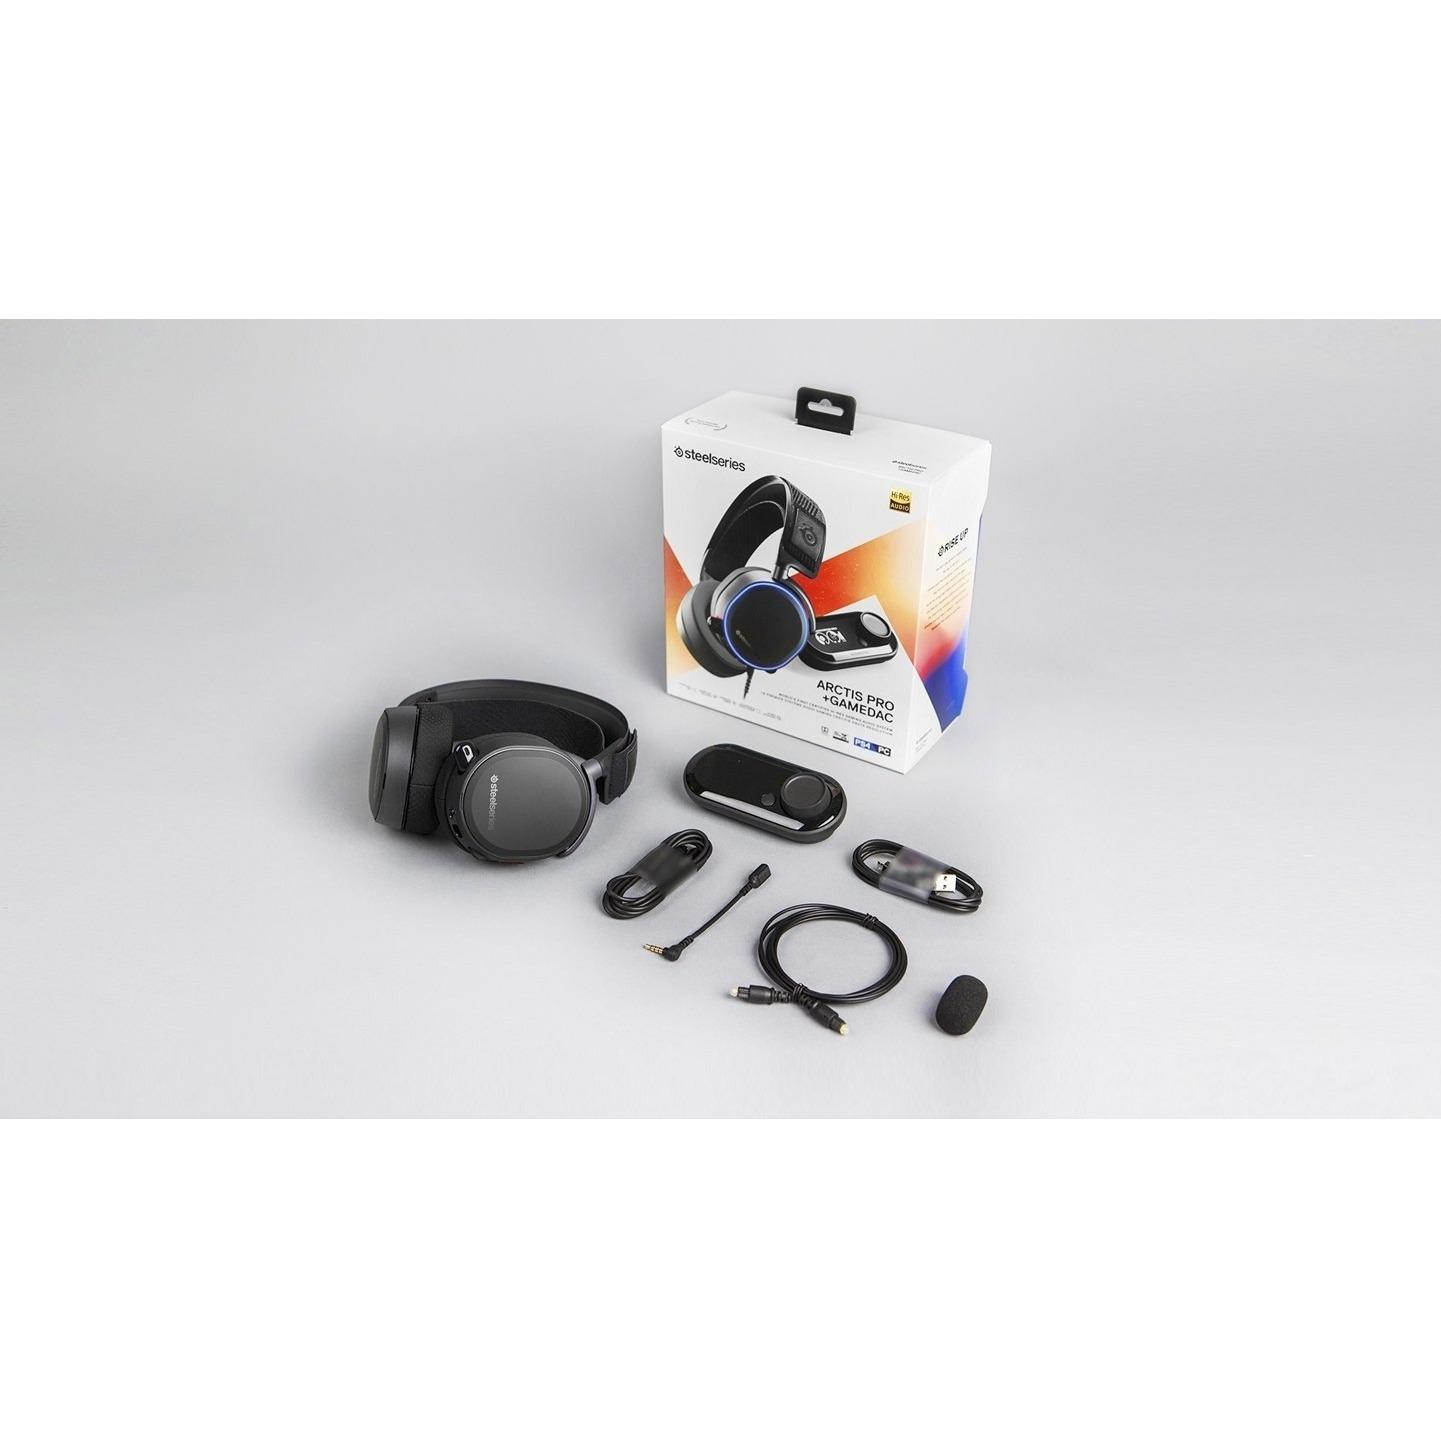 Fitur Steelseries Arctis Pro Rgb With Game Dac Gaming Headset Dan Nyk Hs P10 Usb 71 4